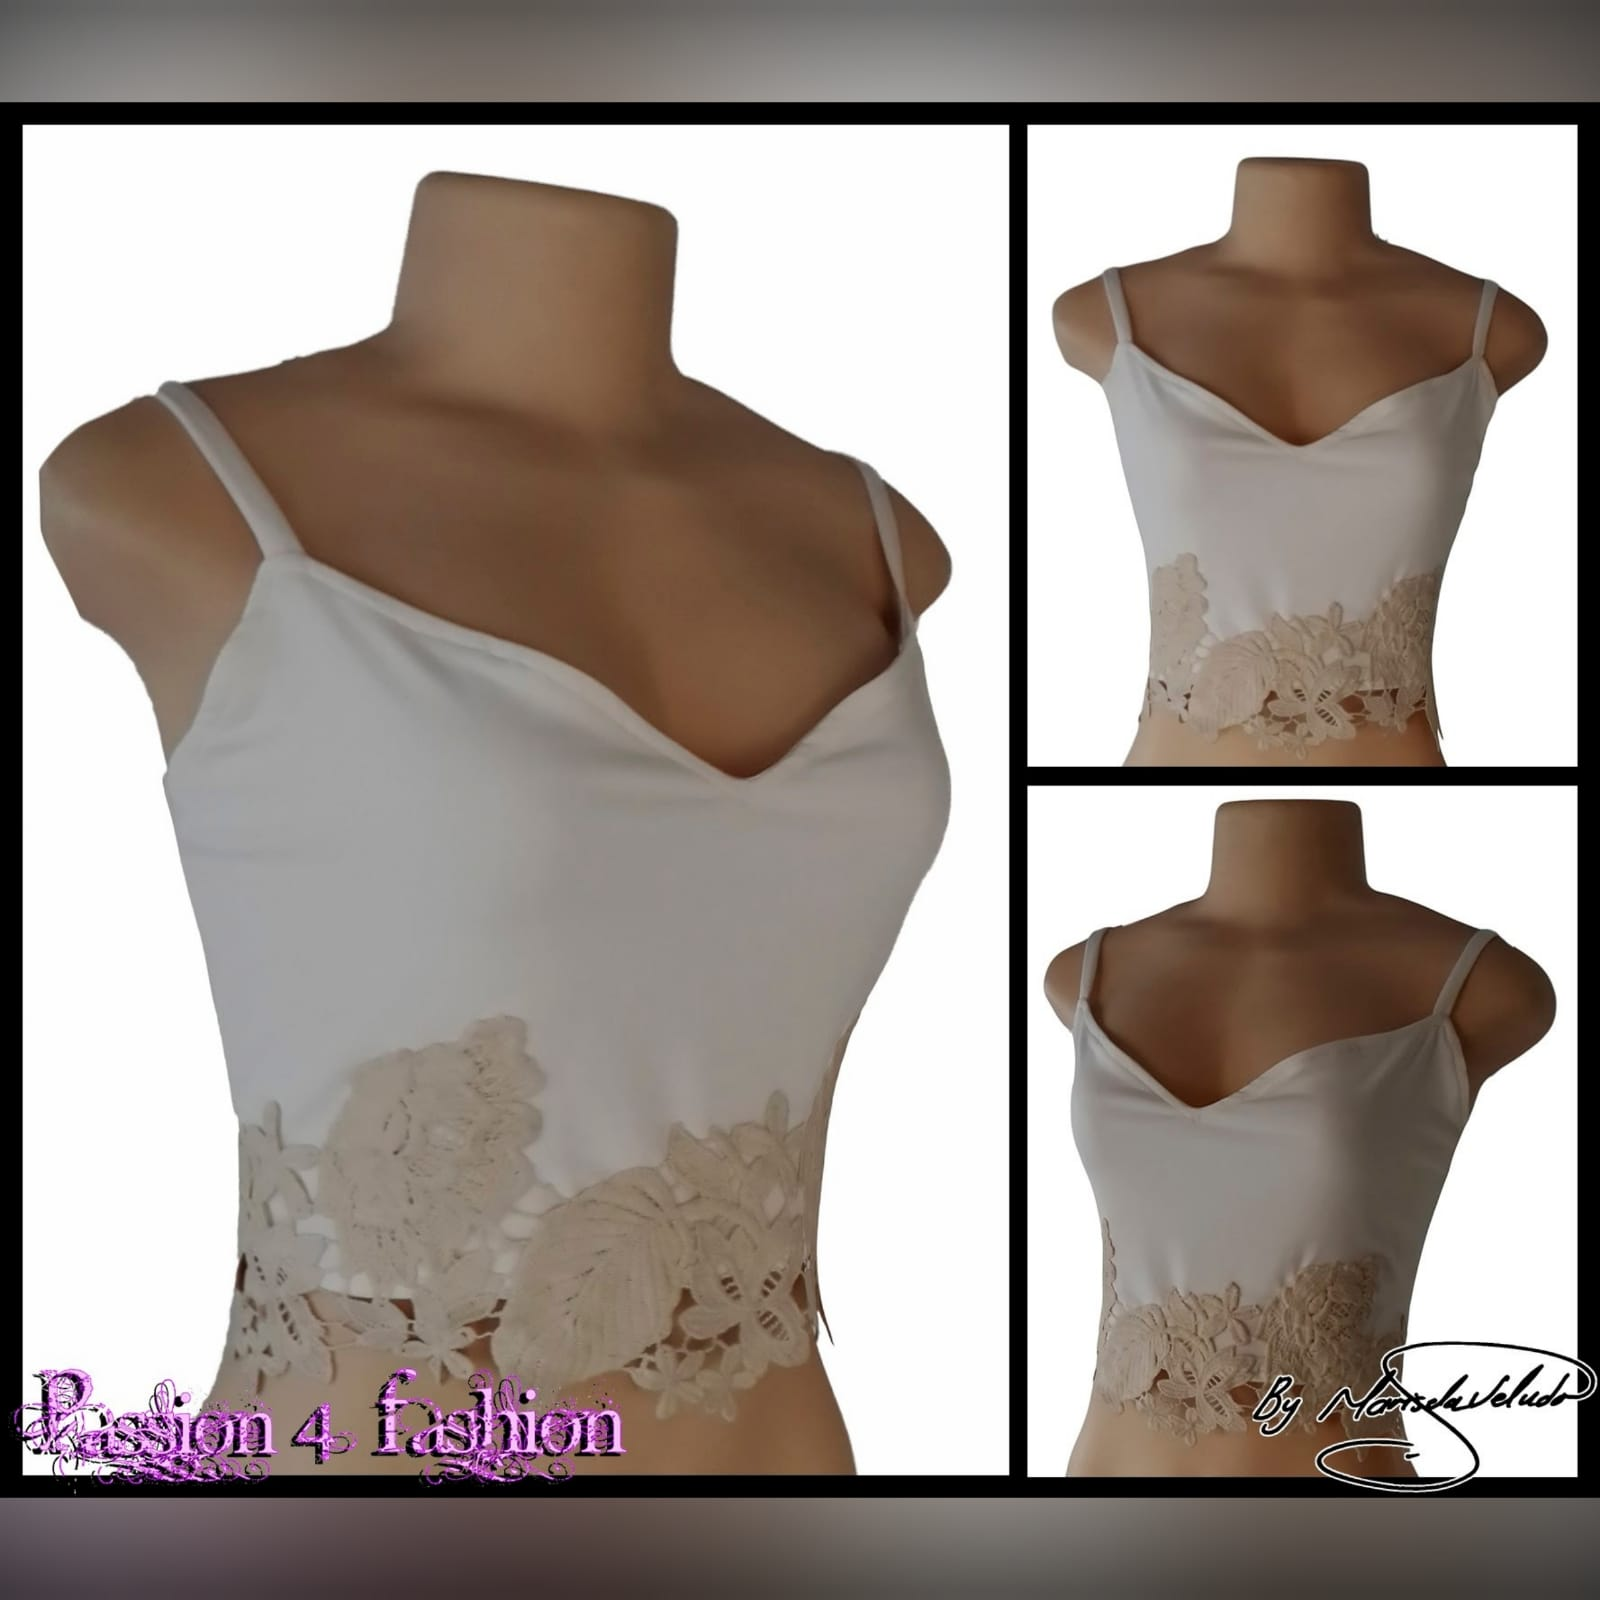 Cream and beige crop top 2 cream and beige crop top with a sweetheart neckline and lace hem detail